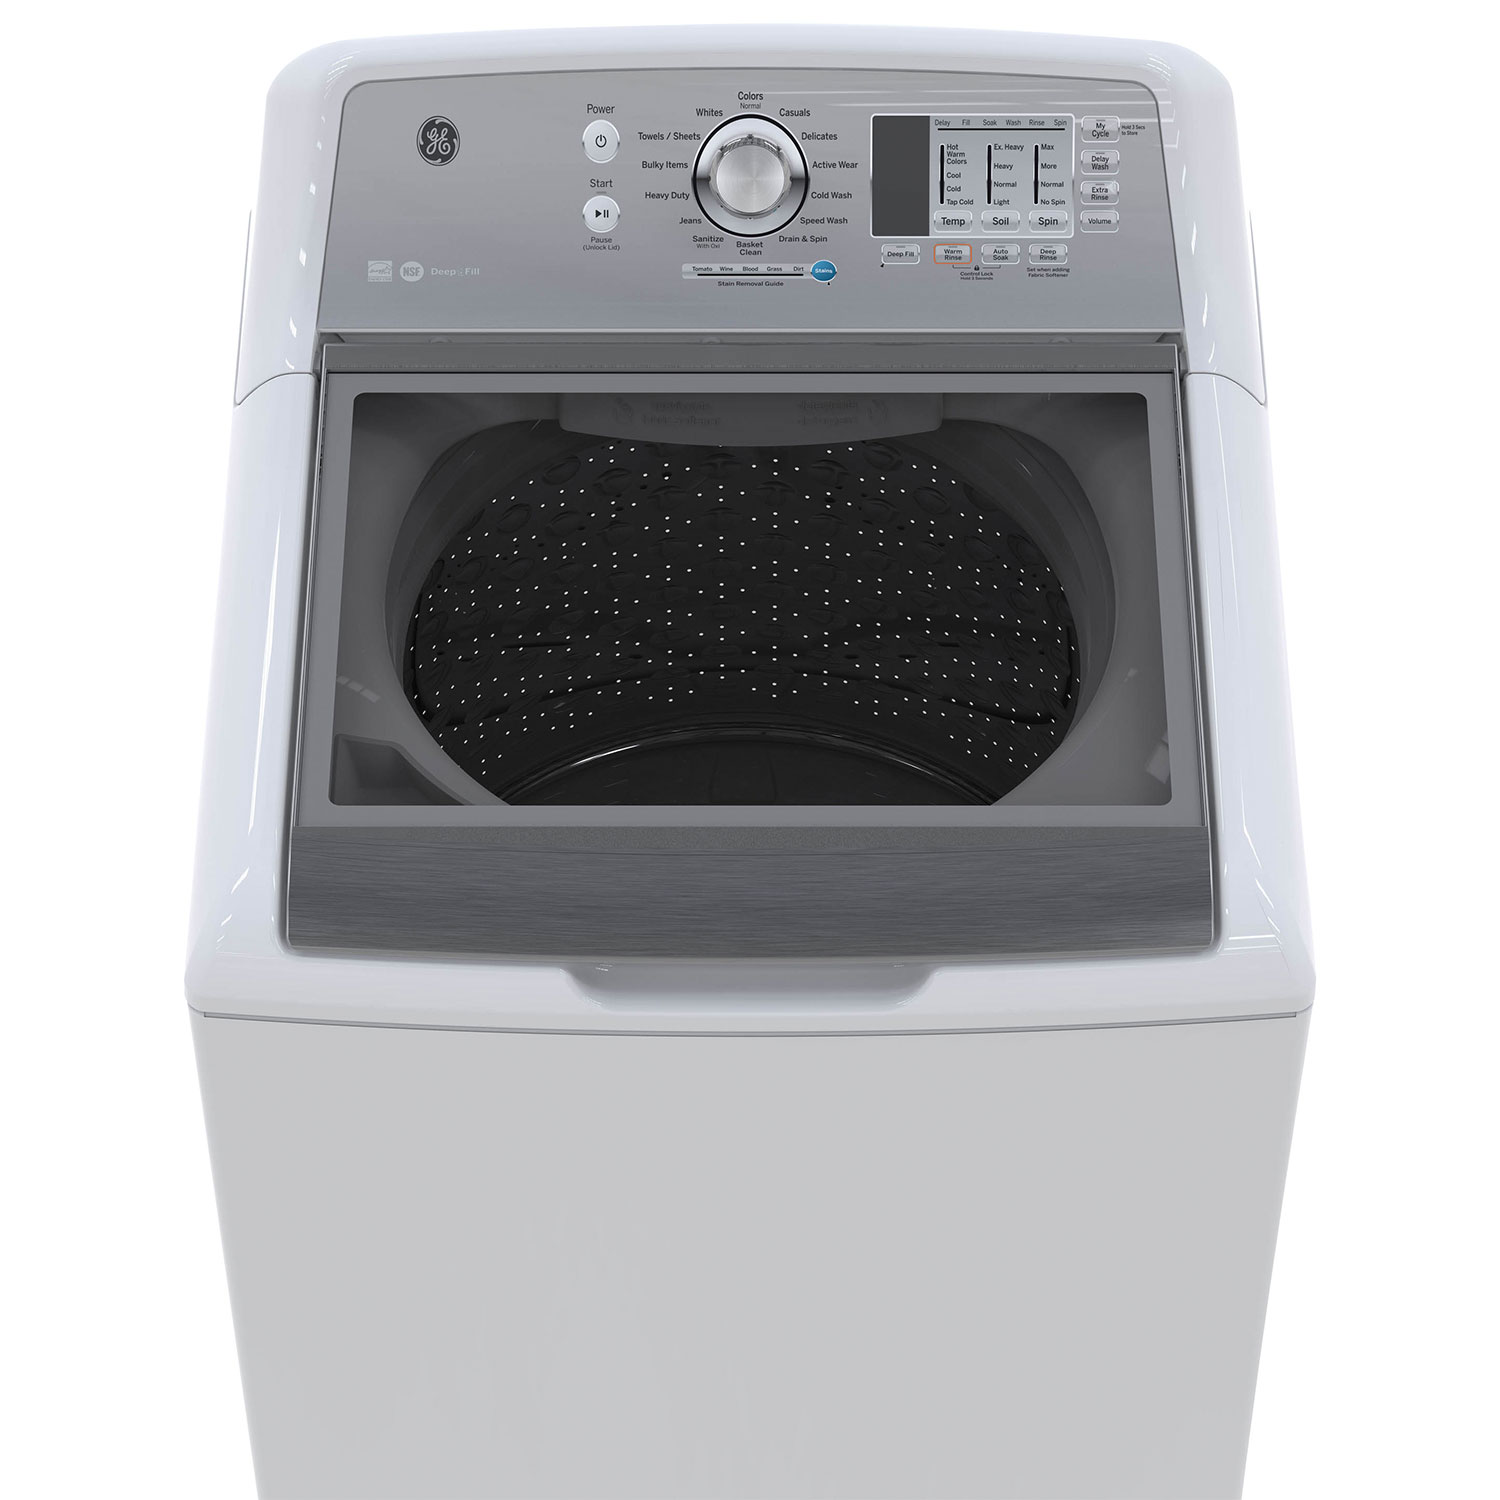 Topload Washer Ge 53 Cu Ft High Efficiency Top Load Washer Gtw680bmkws